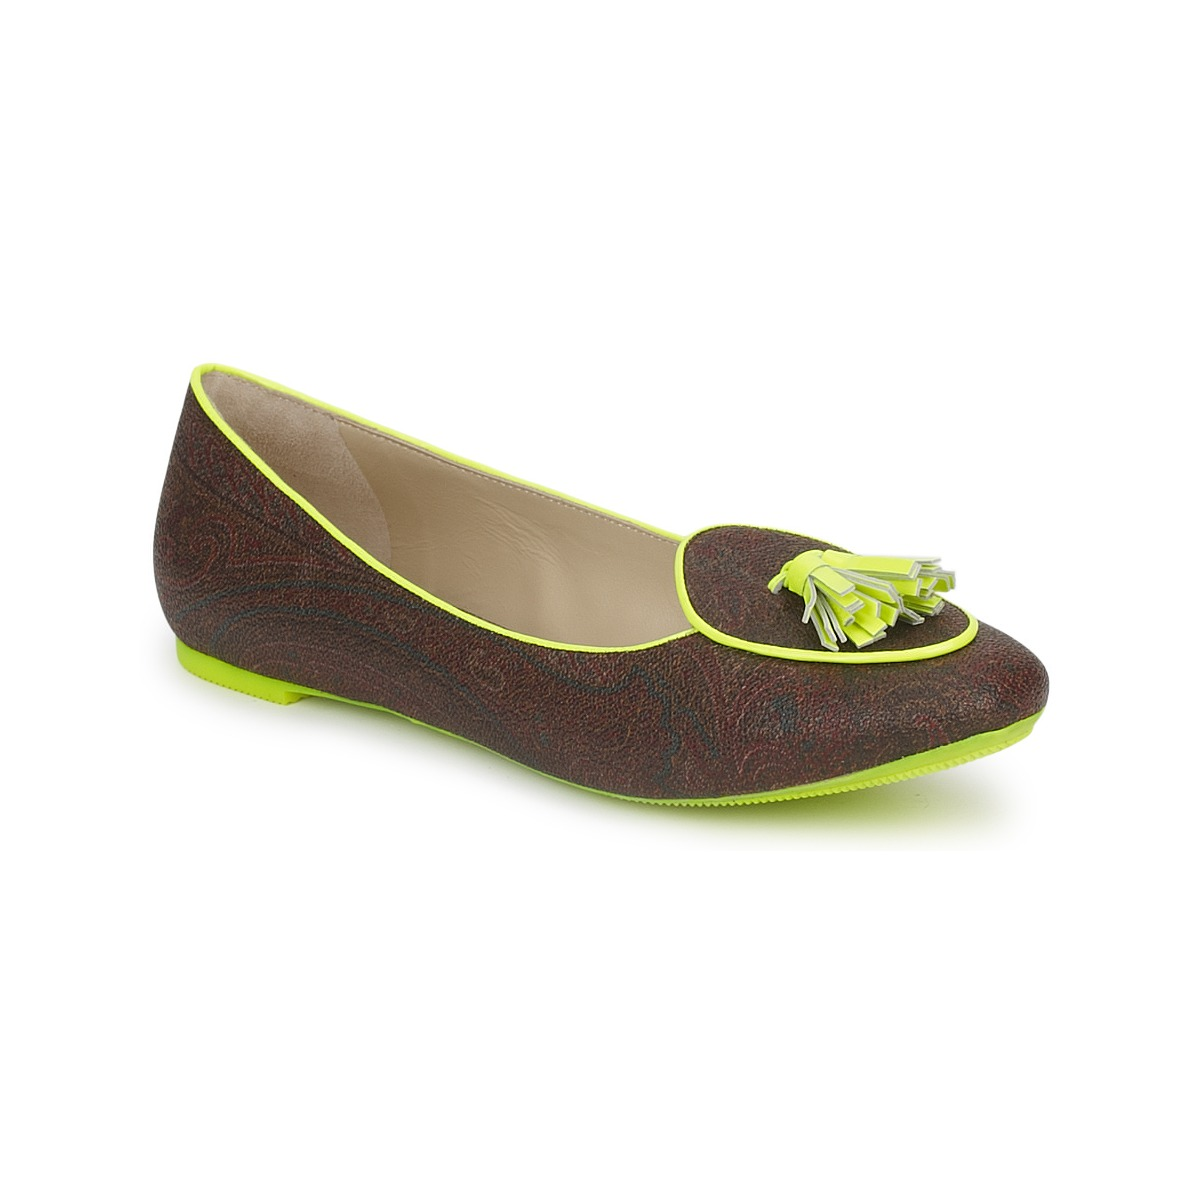 Smart-shoes Etro BALLERINE 3738 Brown / Citron